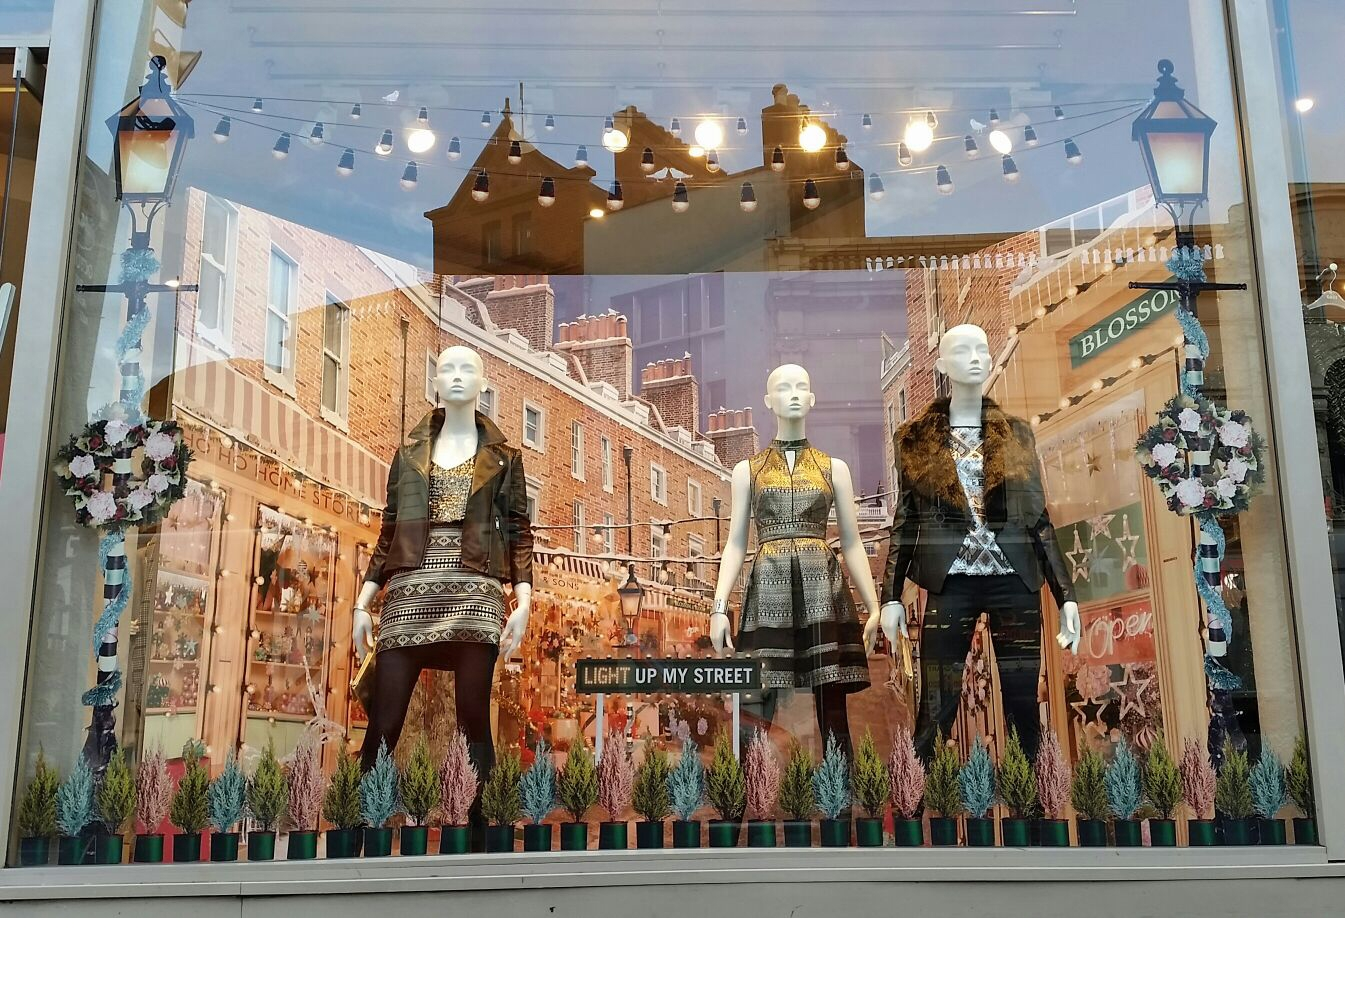 In this autumn window display, Oasis scene is about pine trees and mannequins dressed in jackets.